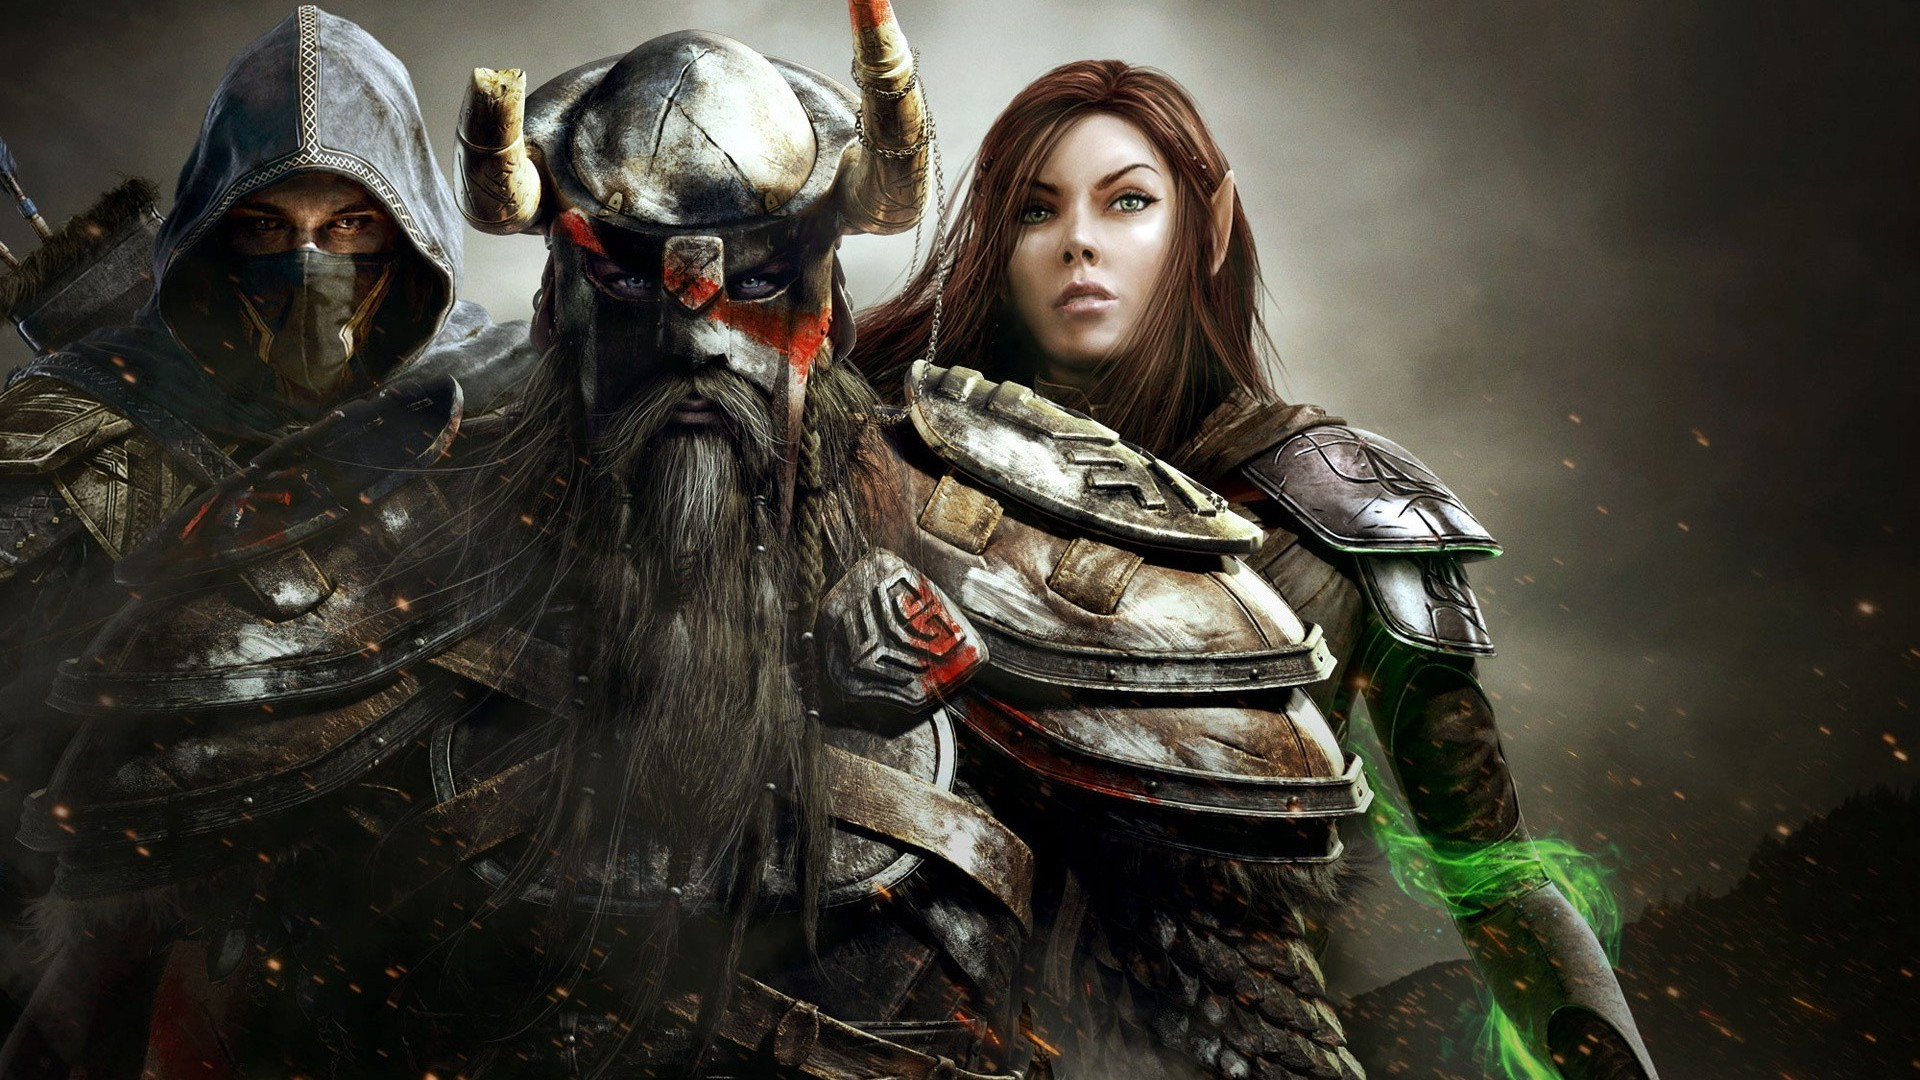 Free Download Elder Scrolls Wallpaper Wallpapers Gratis 1920x1080